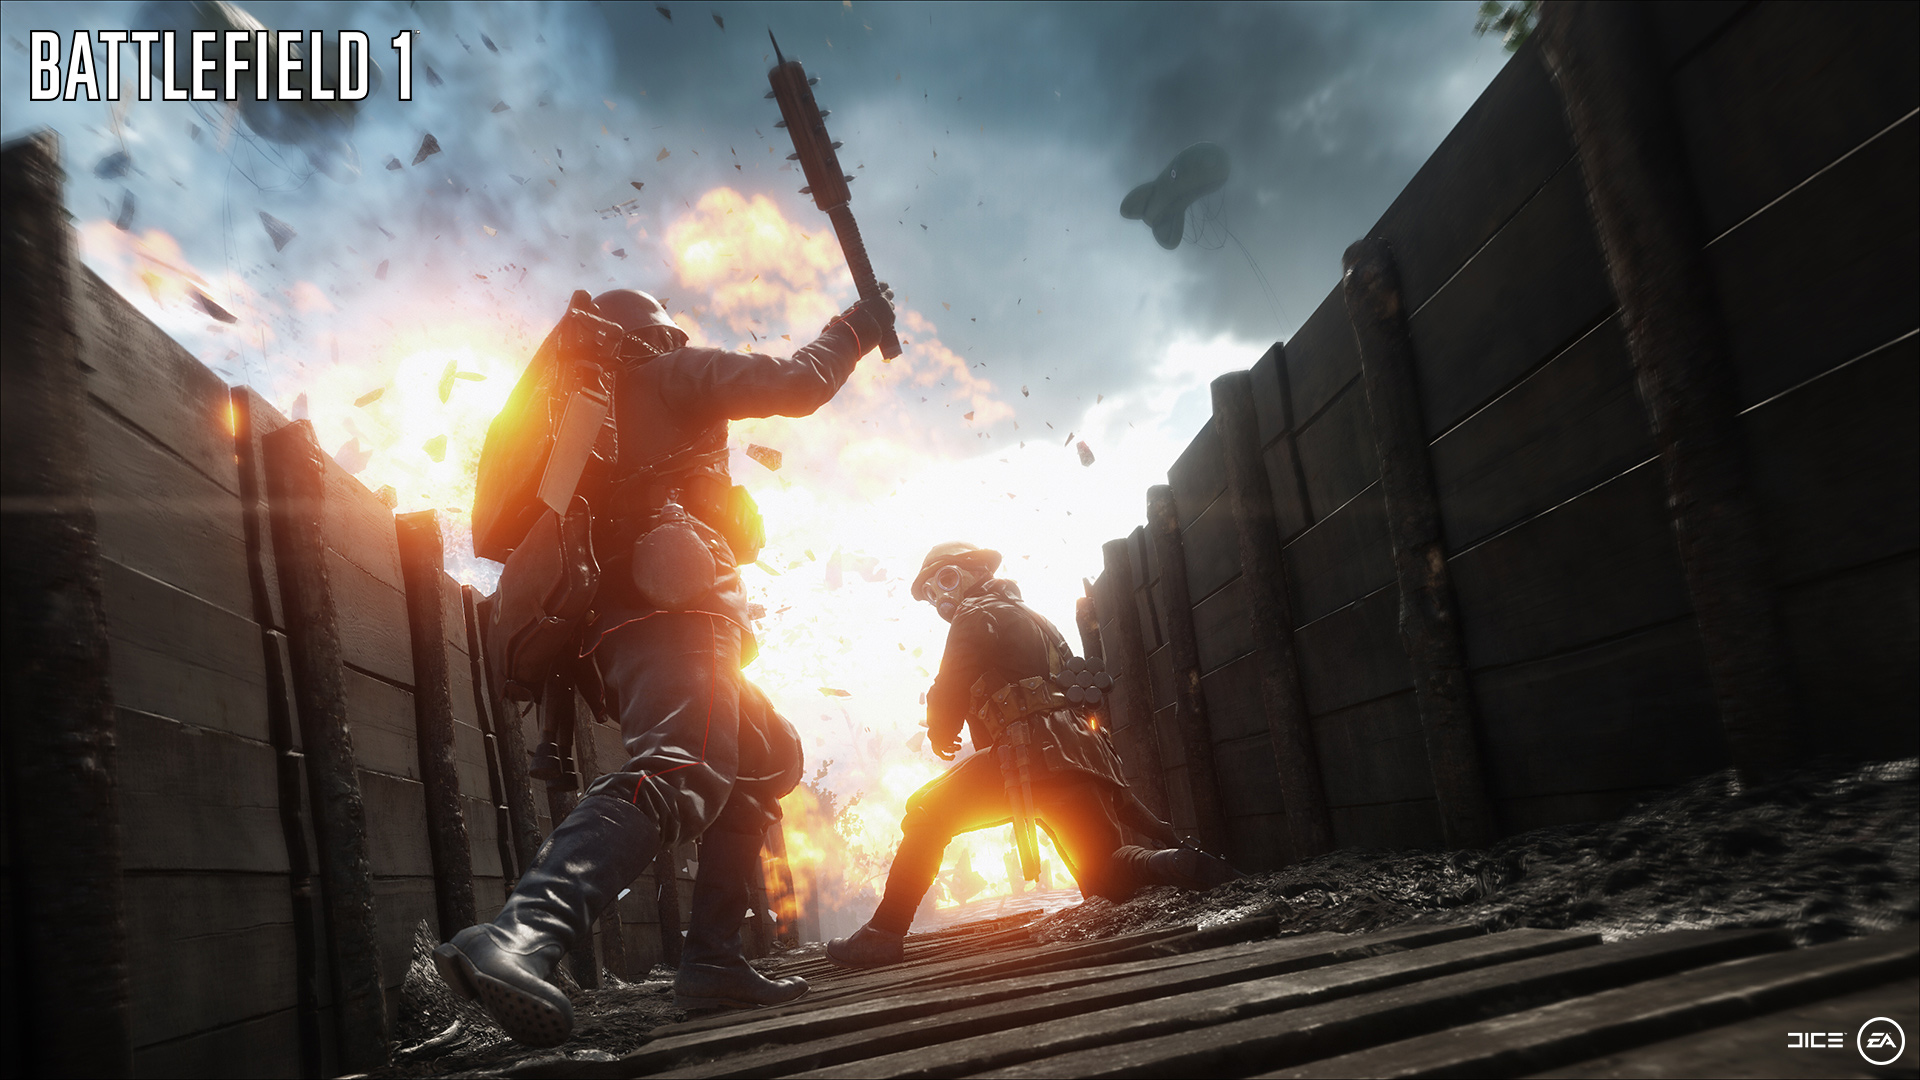 battlefield 1 2 Battlefield 1 Suffers Huge Server Outages, Hackers Reportedly Involved